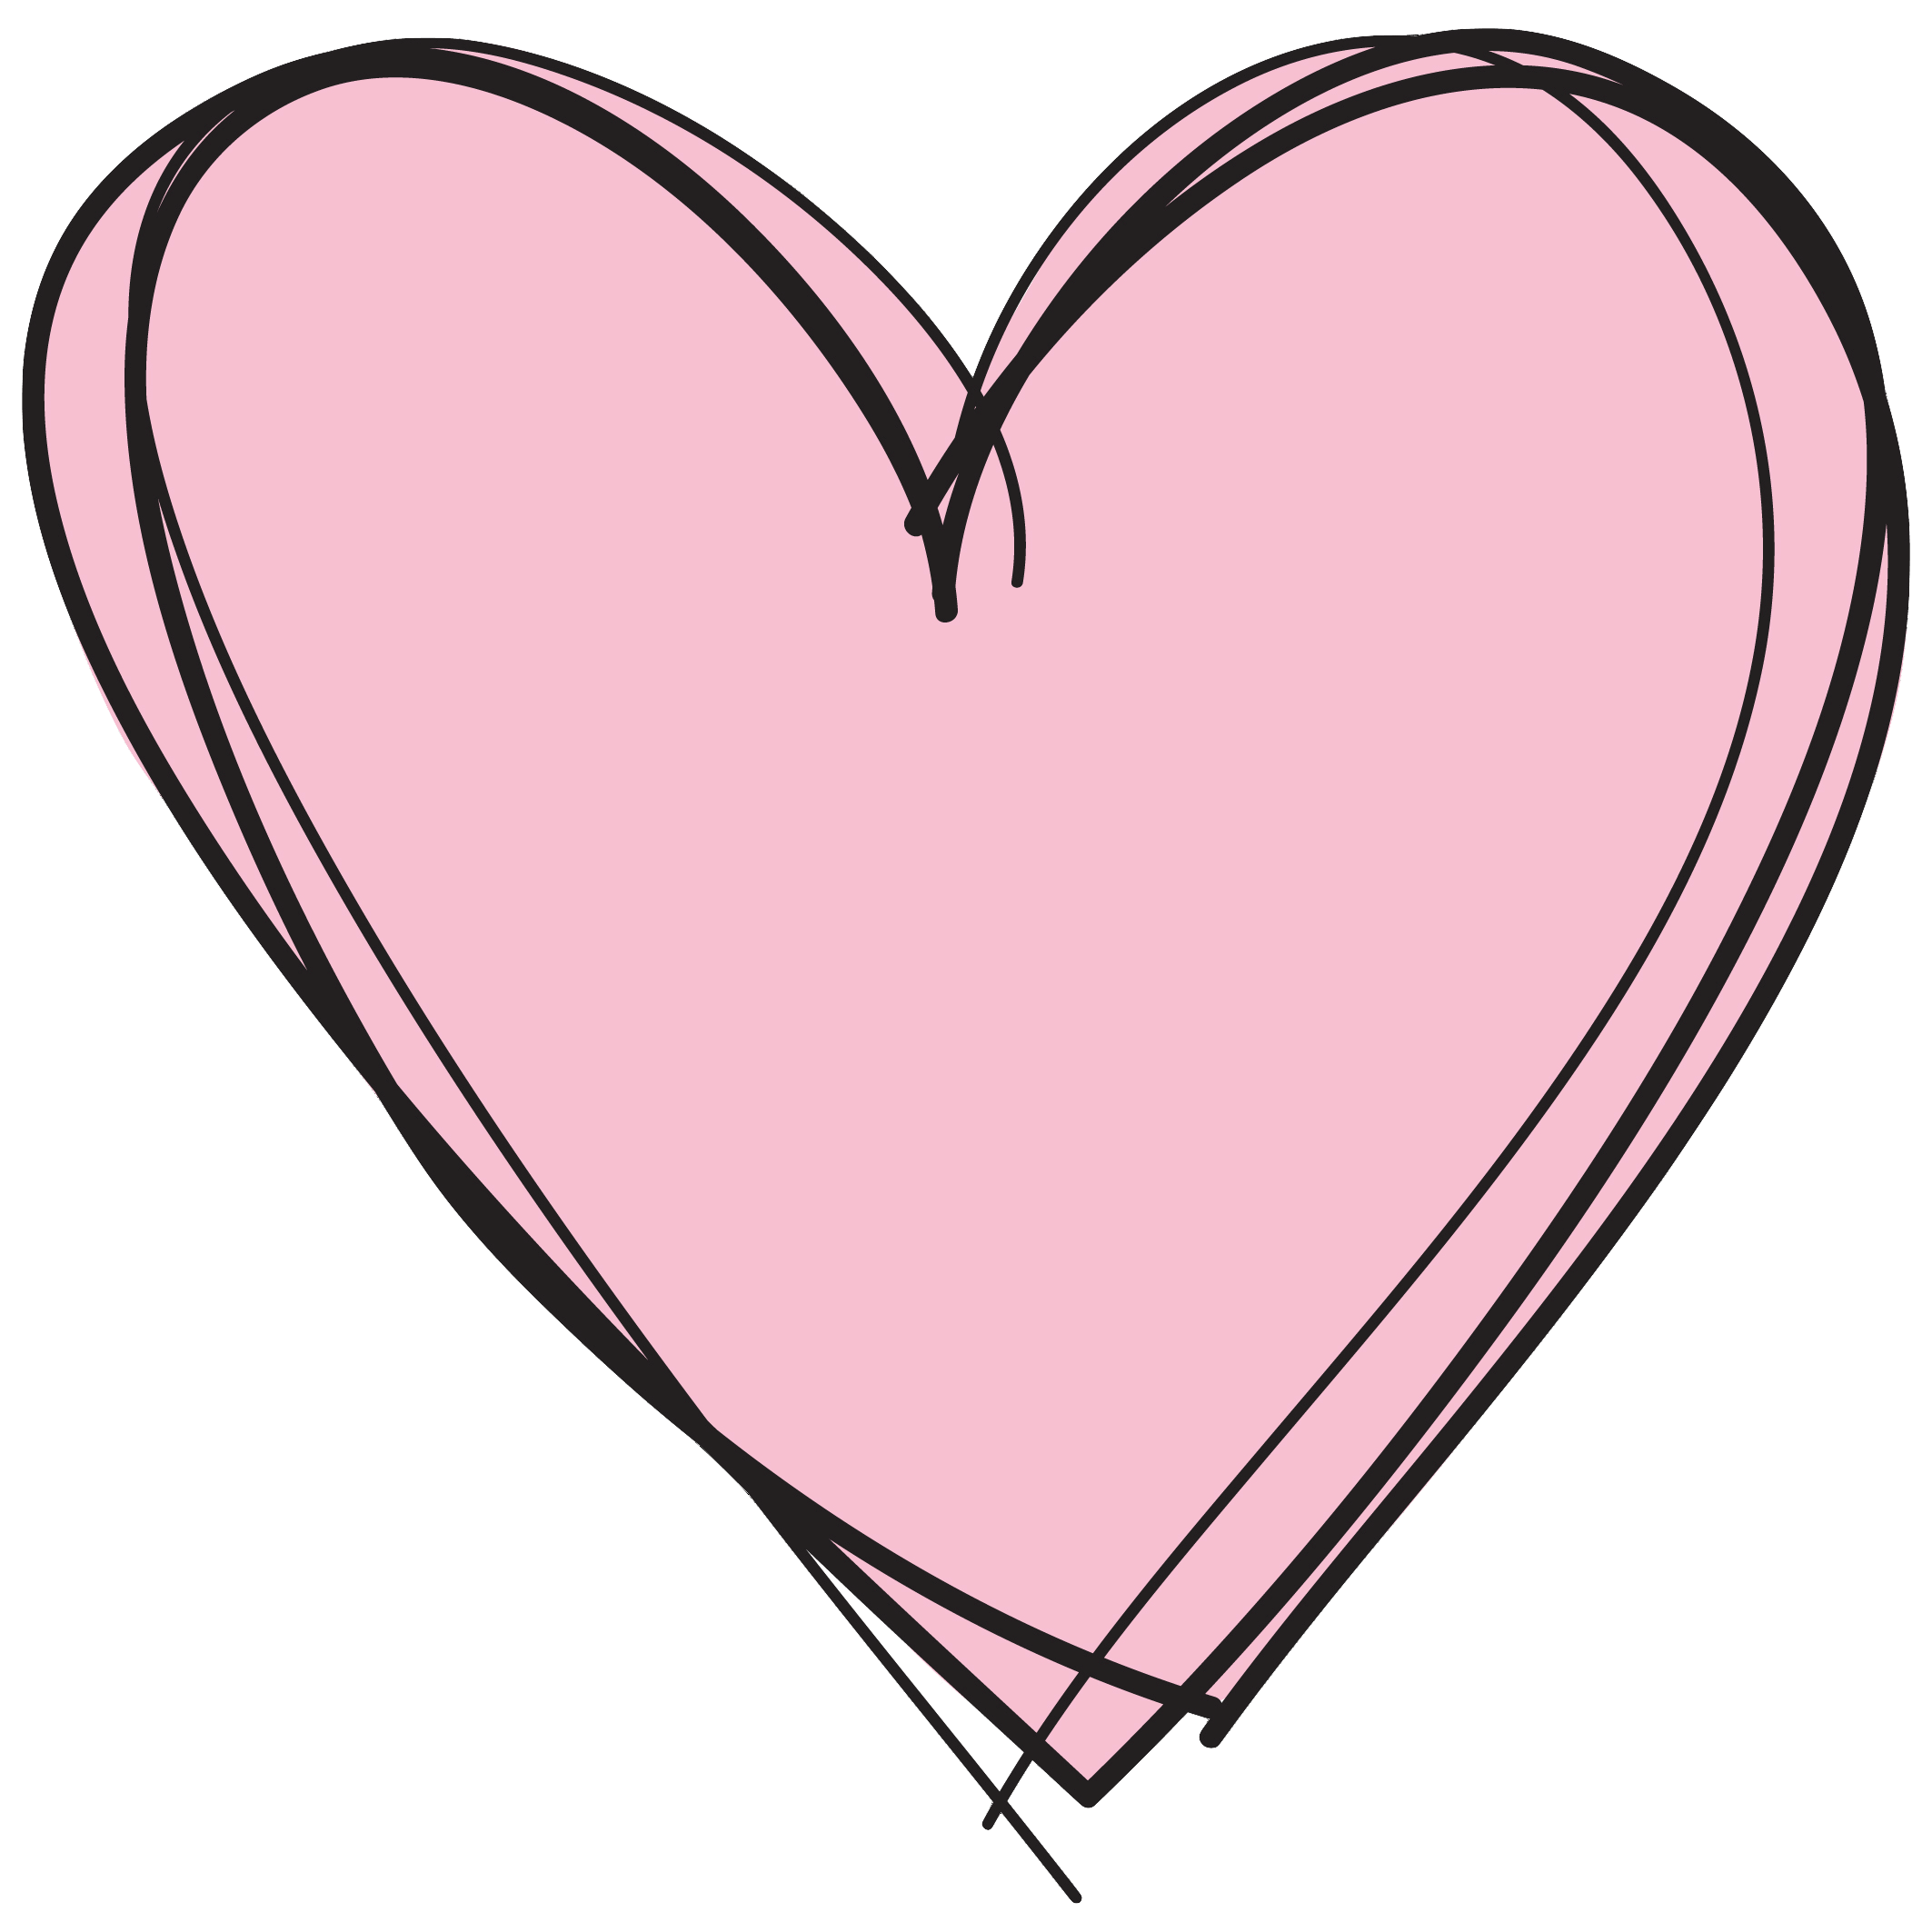 Transparent background . Clipart heart pink